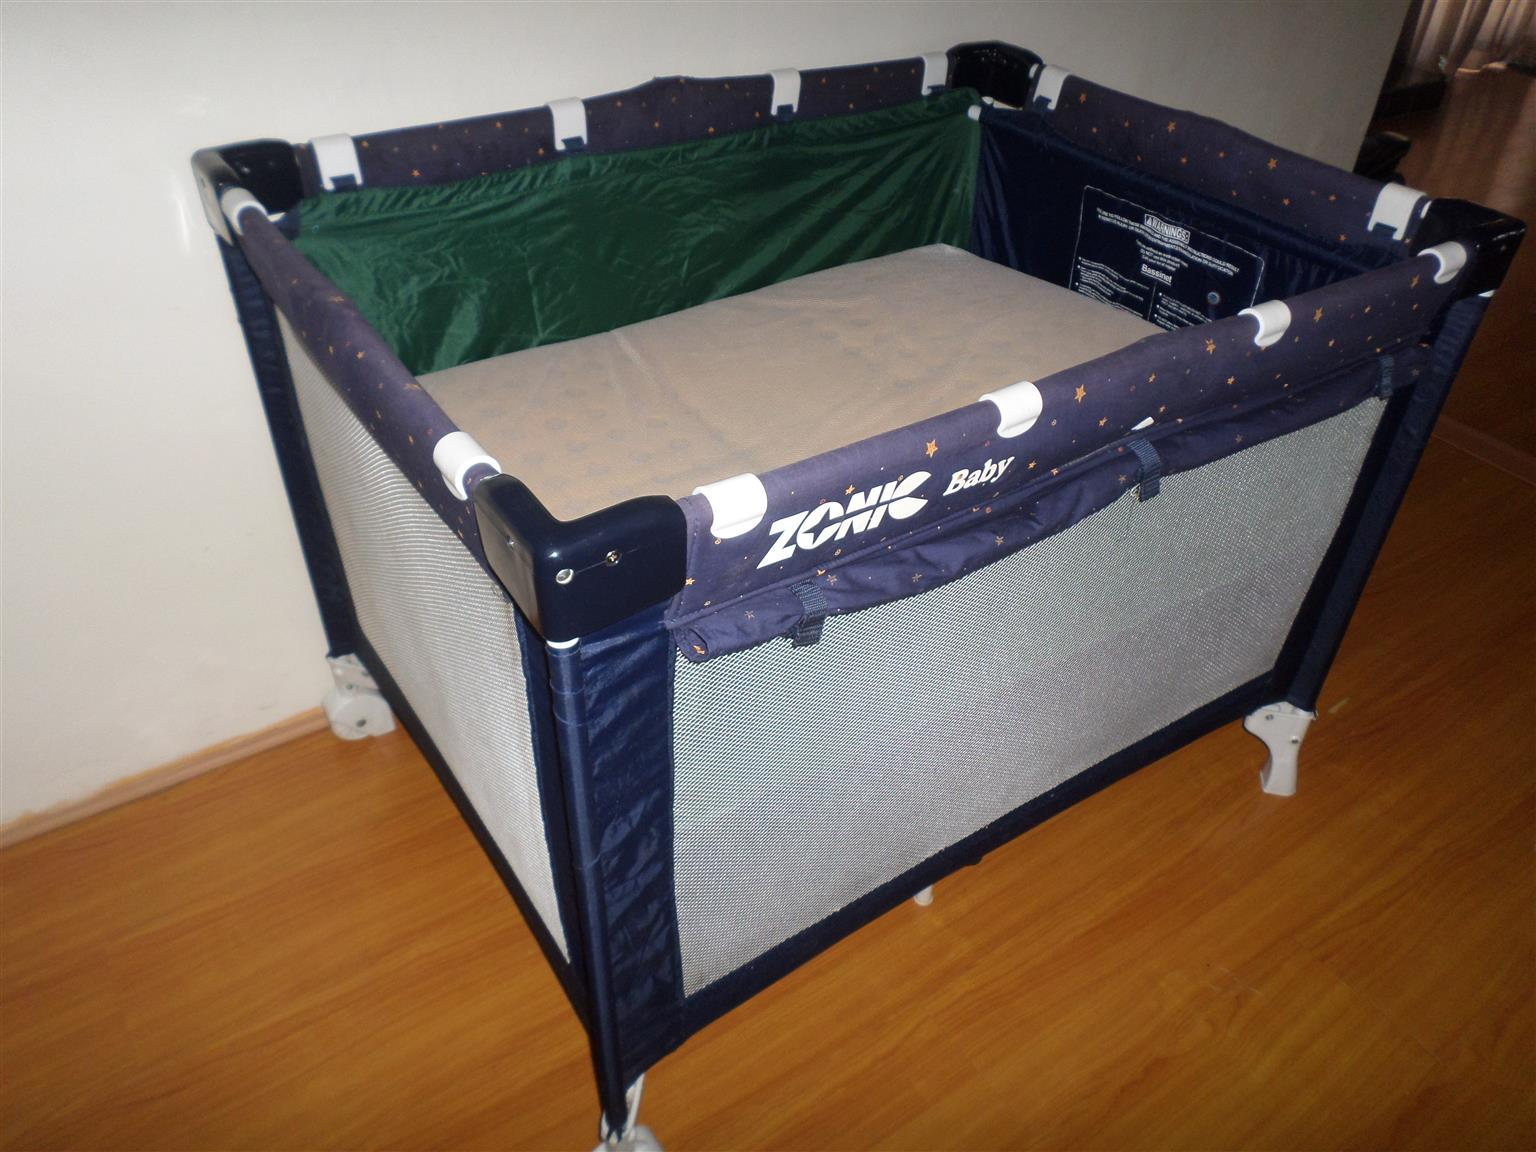 Zonic Camp cot for sale